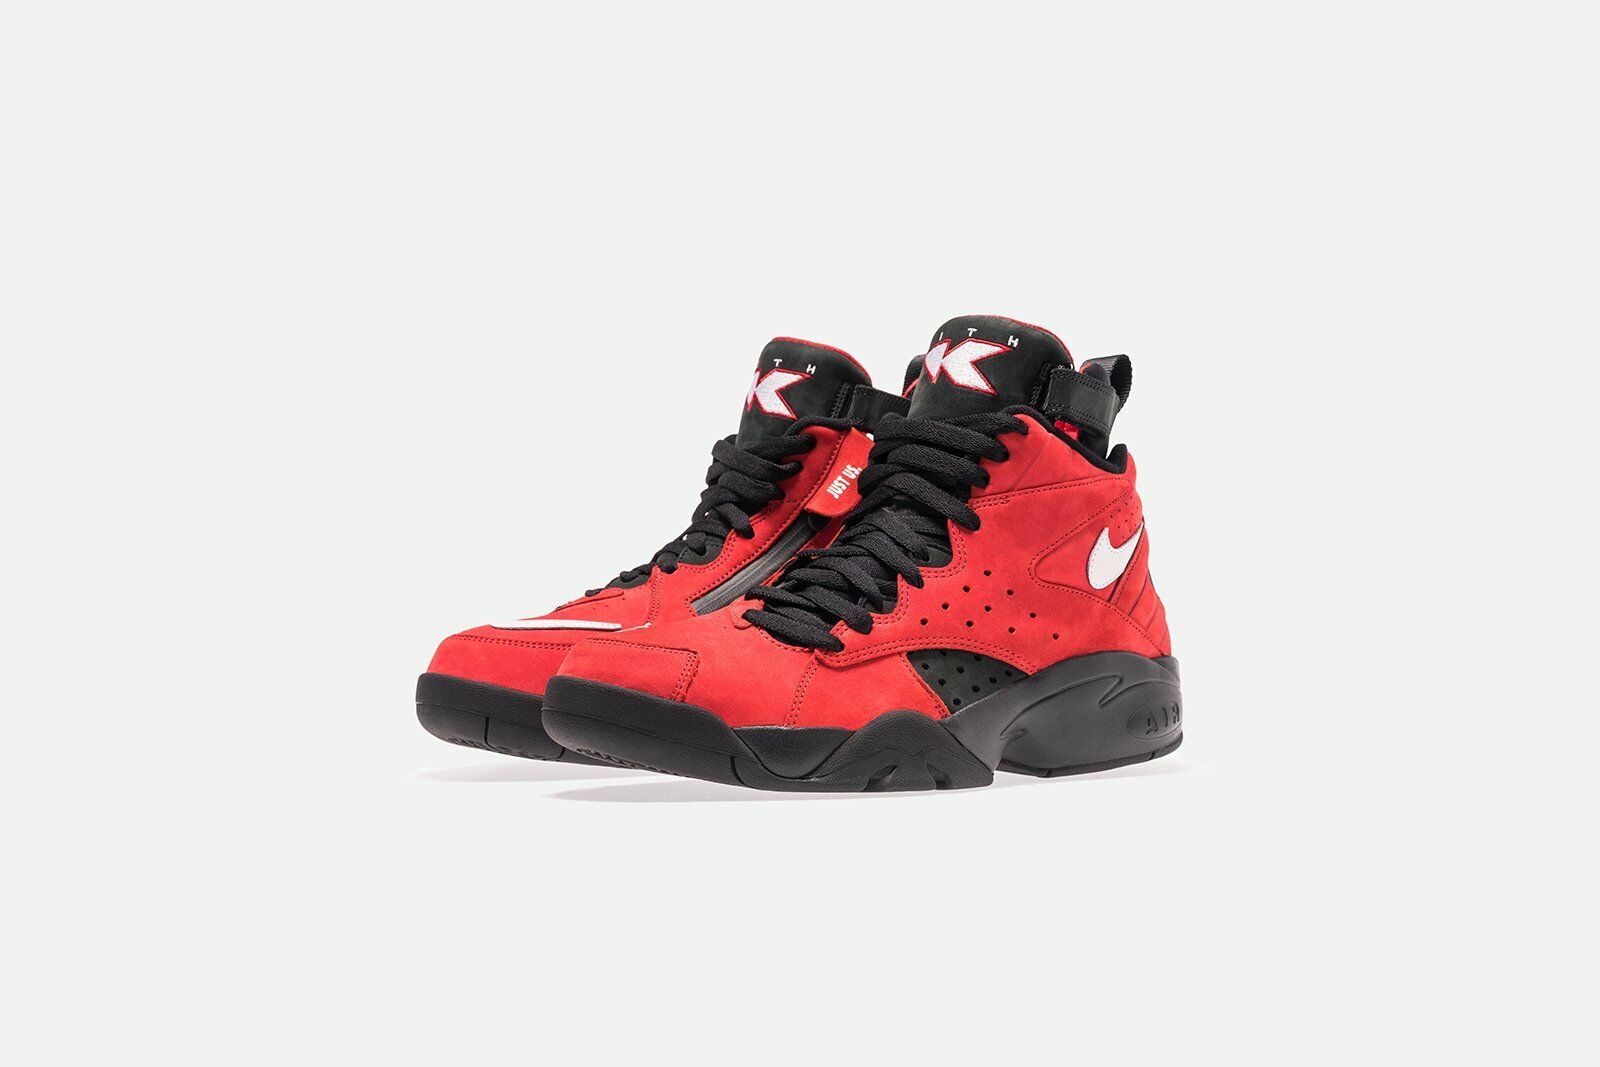 Nike Flight Air Maestro II High Kith Take Flight Nike Collection Scottie Pippen 7.5 4a9724